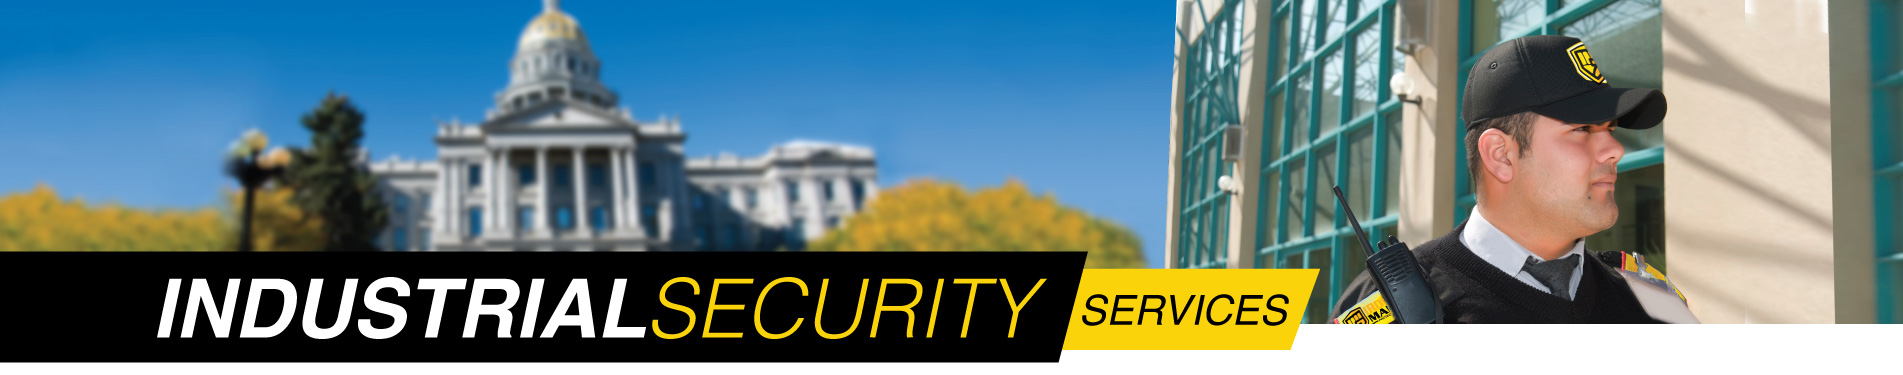 Houston area industrial security services